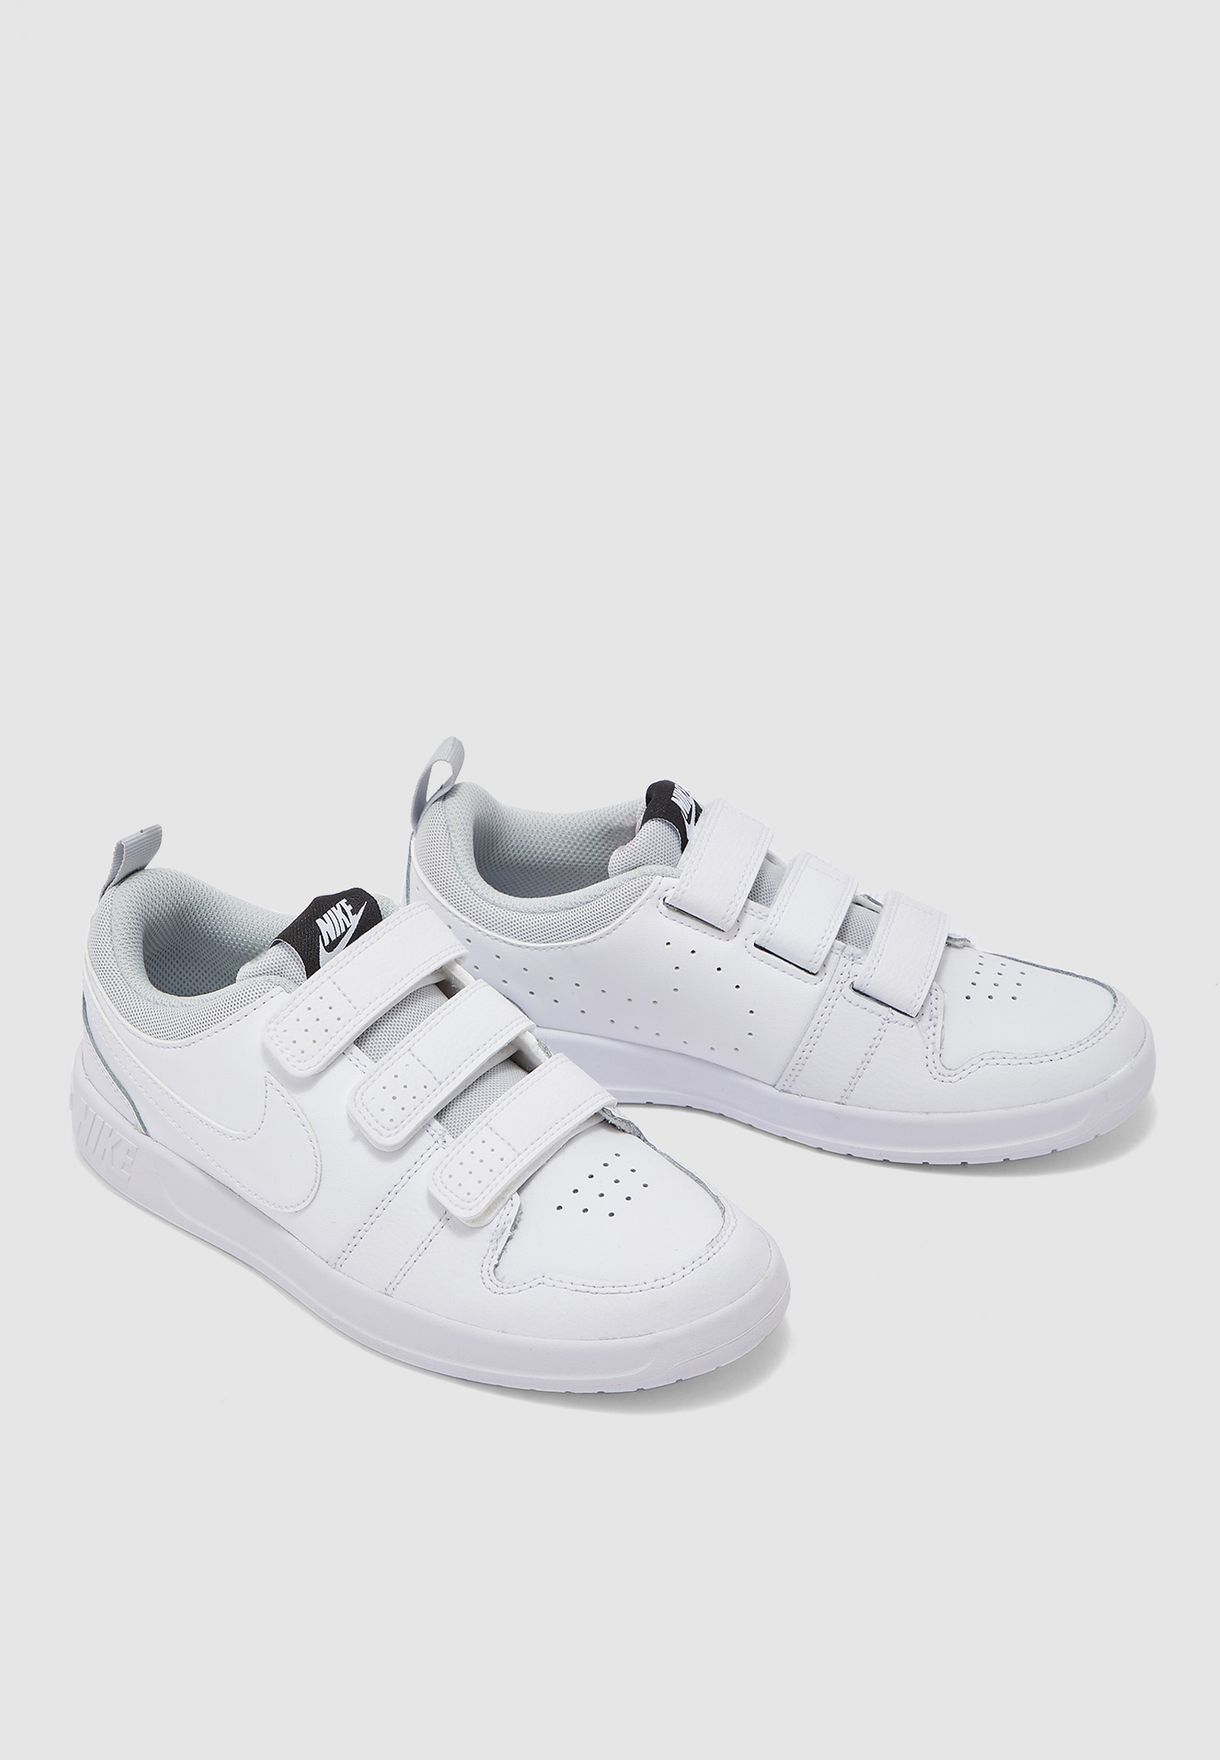 Hombre rico facultativo Manifiesto  Buy Nike white Youth Pico 5 for Kids in MENA, Worldwide | CJ7199-100